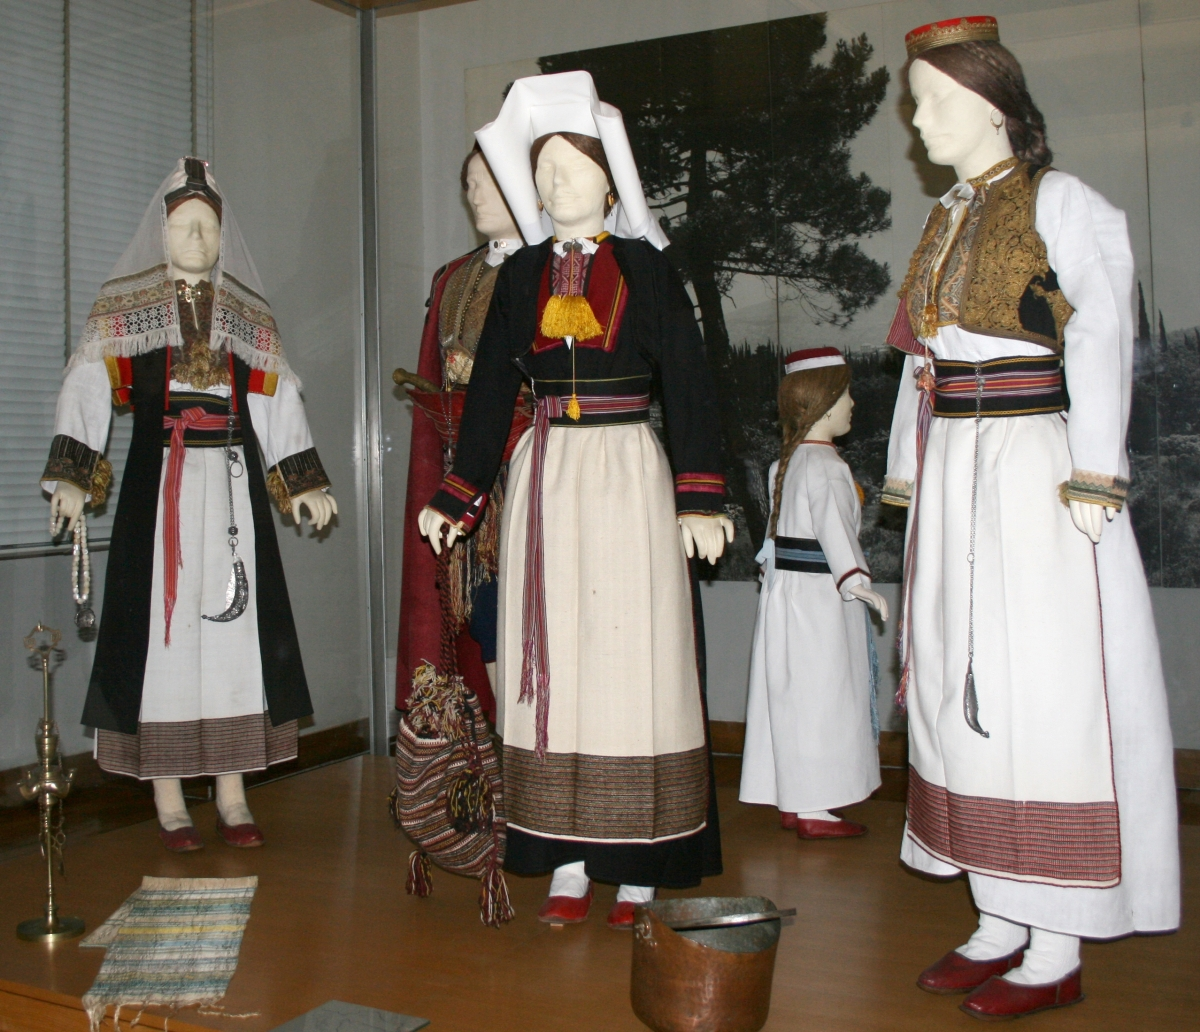 COSTUME FROM THE DUBROVNIK AREA (CILIPI, POPOVICI, KOMAJI), SOUTHERN DALMATIA